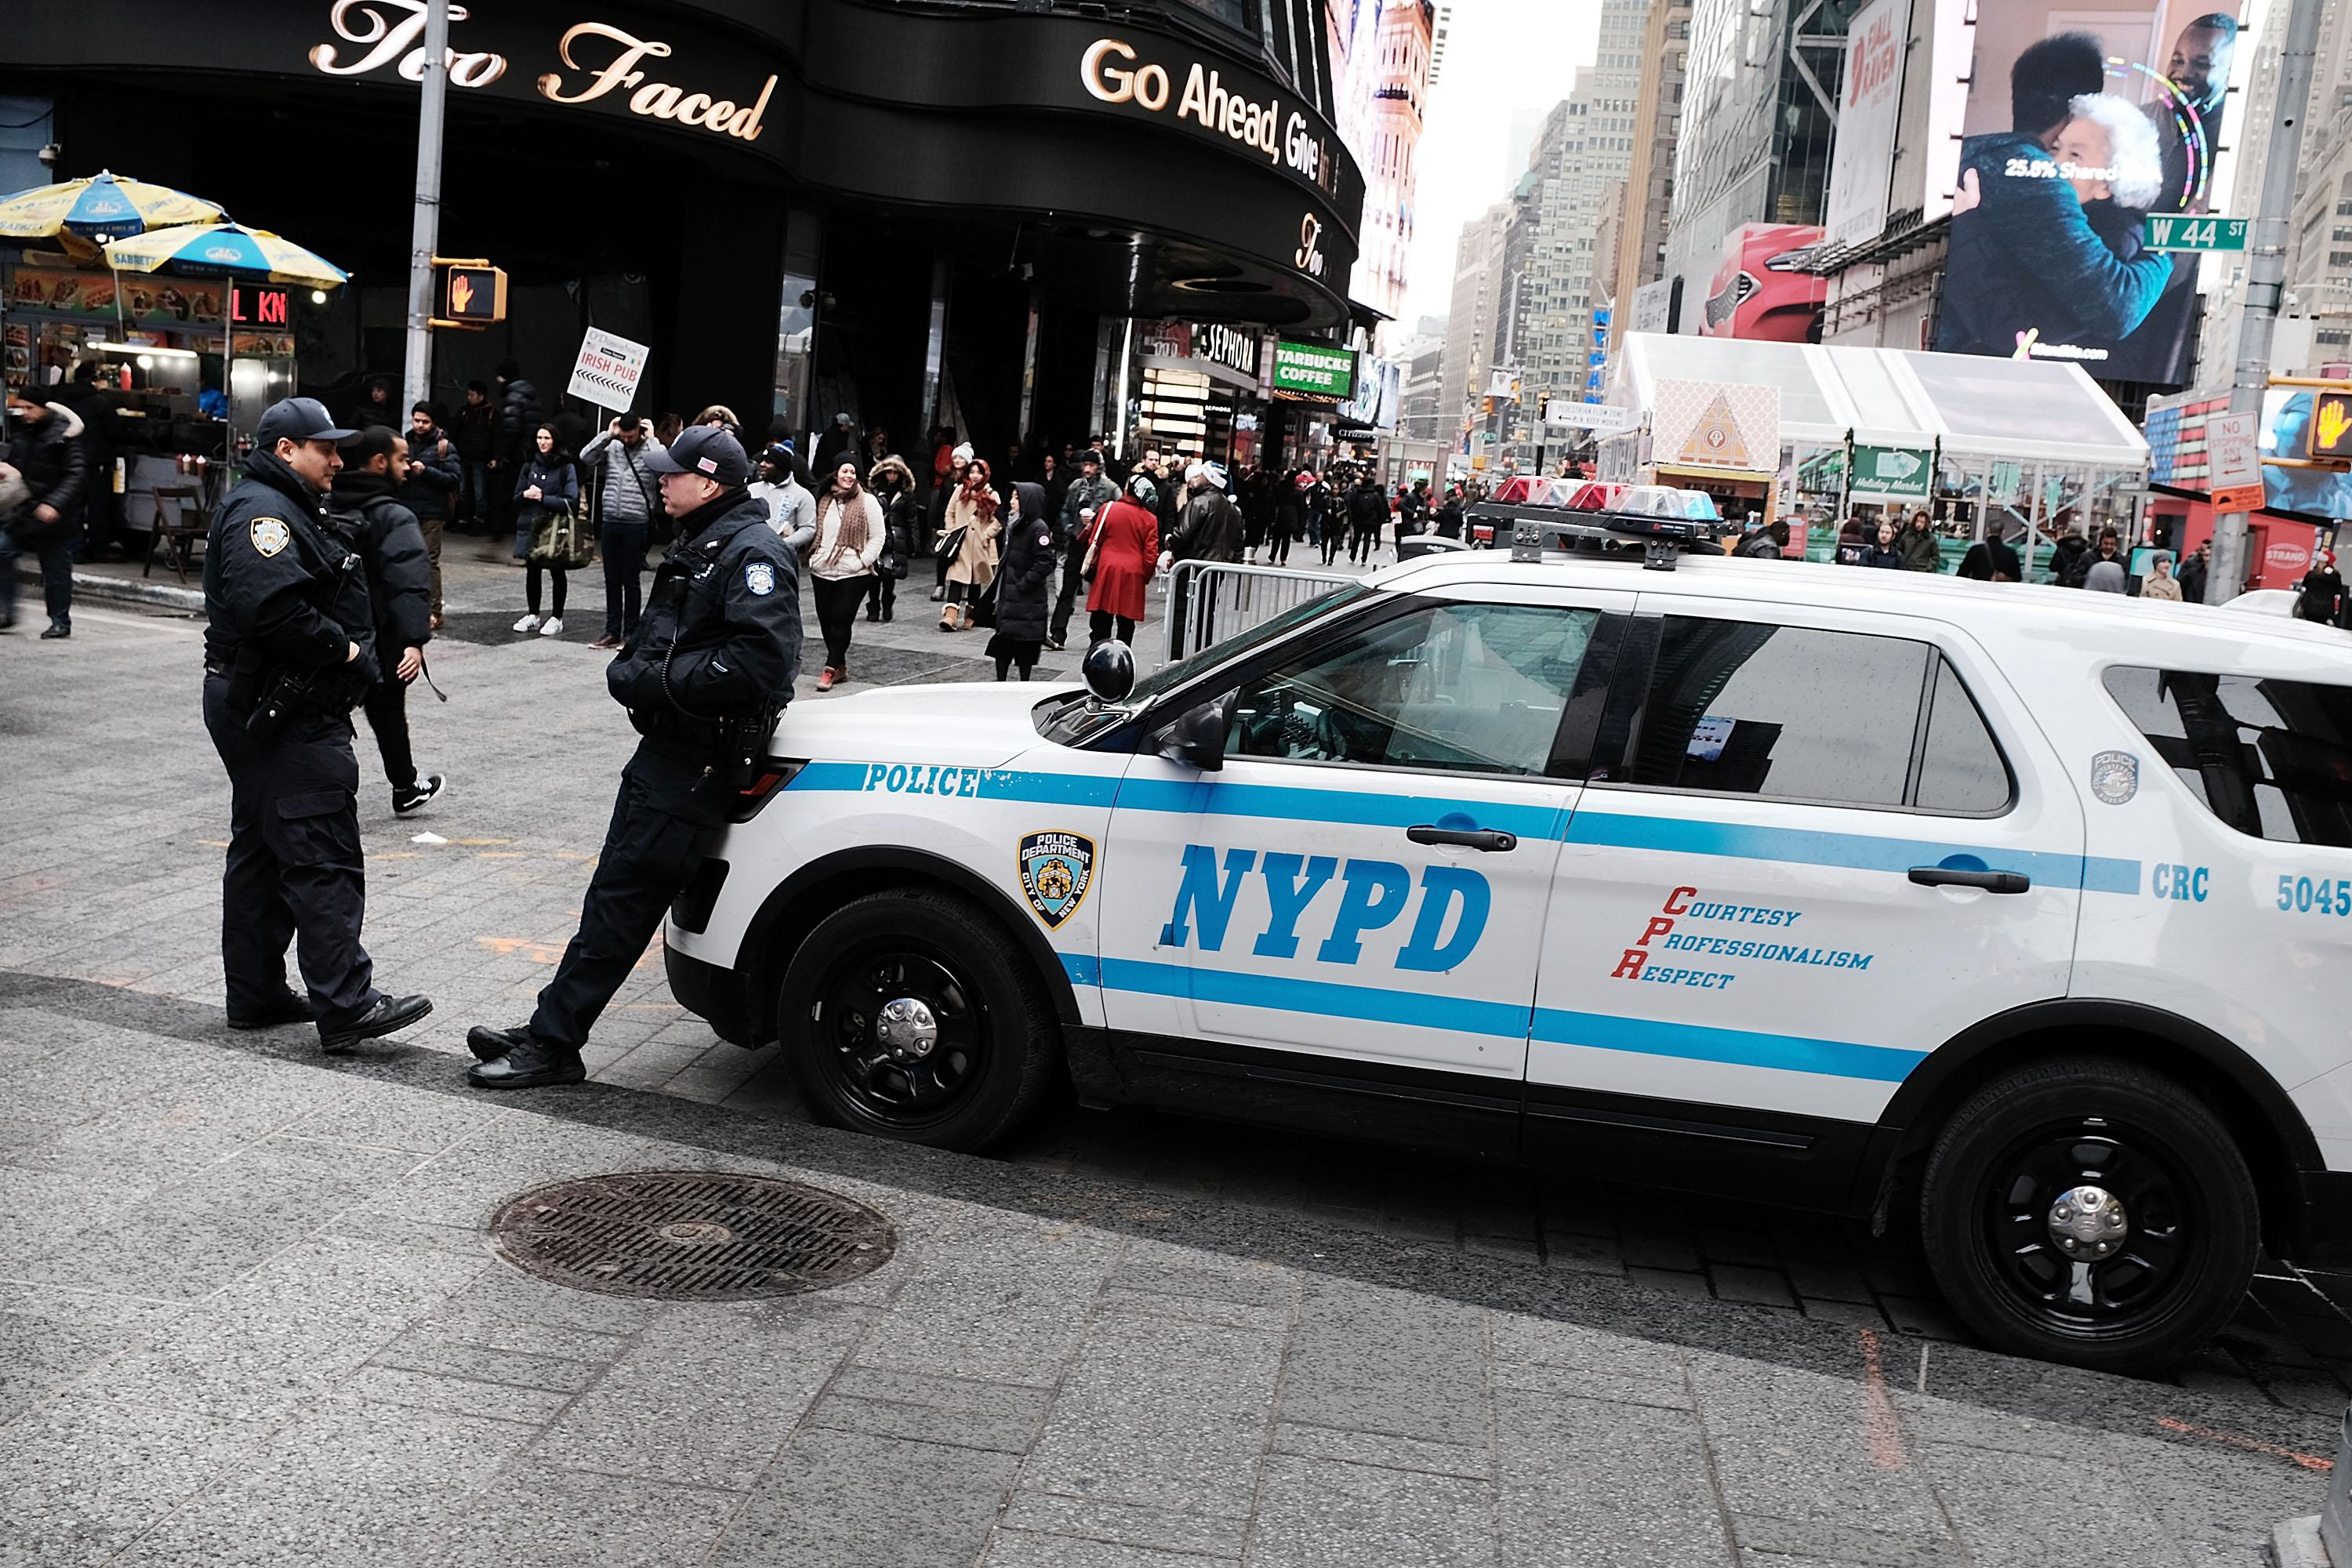 New York City police stand on a corner in Times Square on December 12, 2017 in New York City.